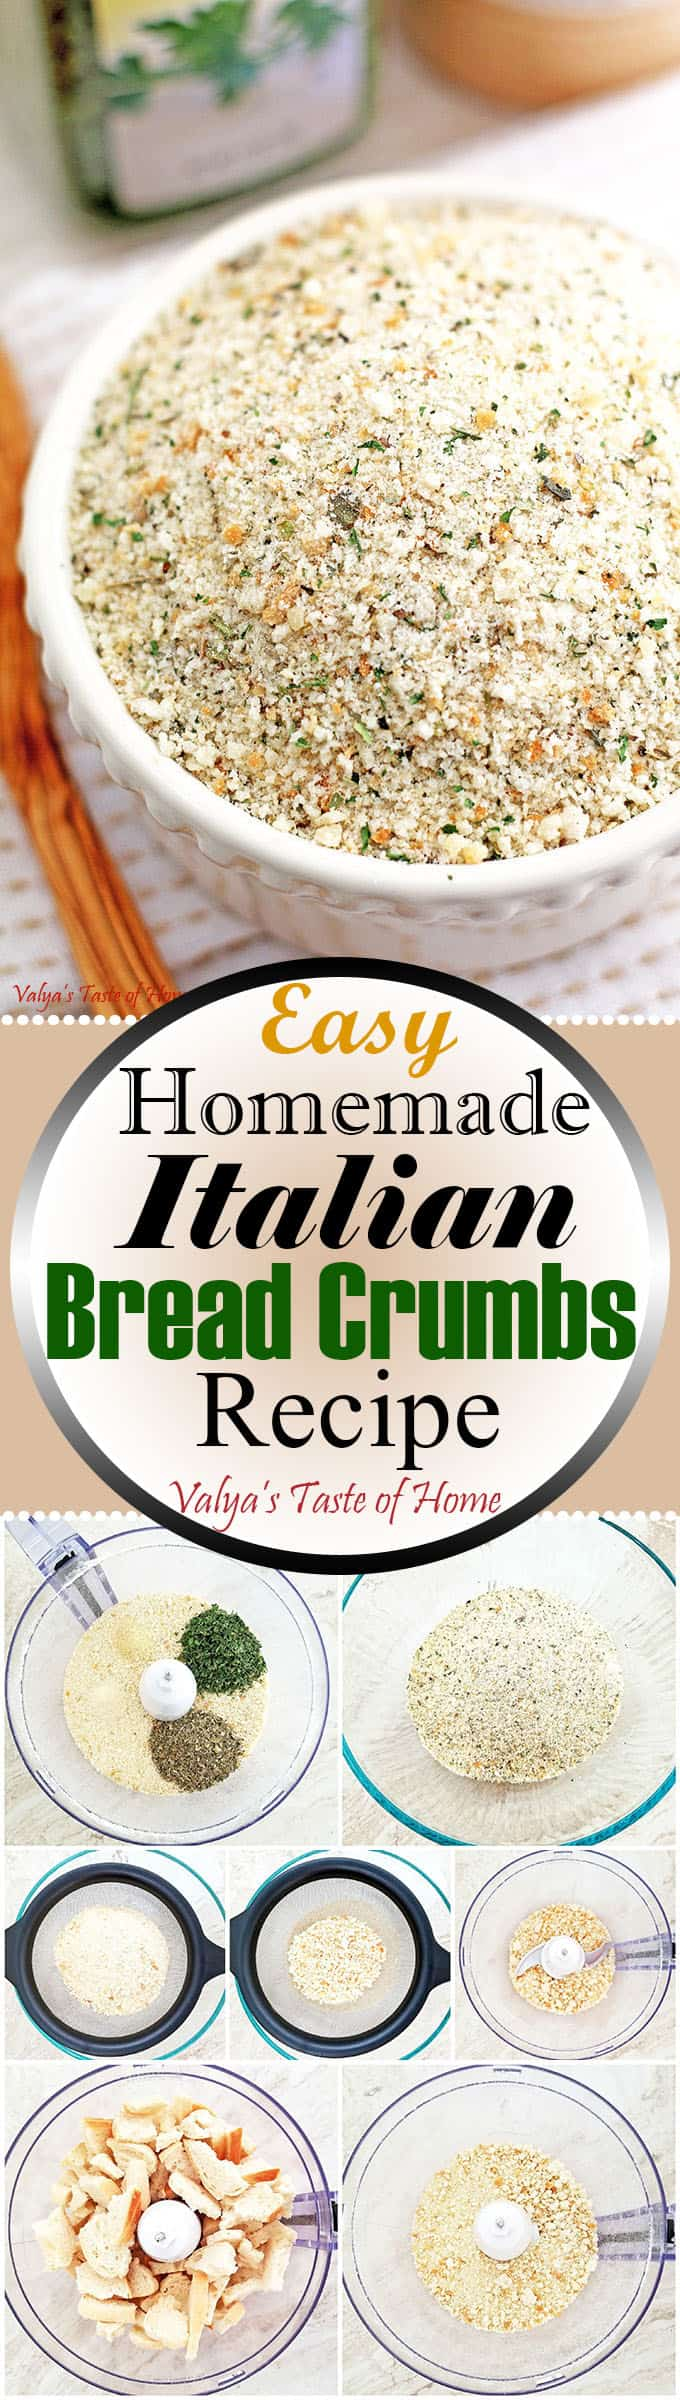 Easy Homemade Italian Bread Crumbs Recipe